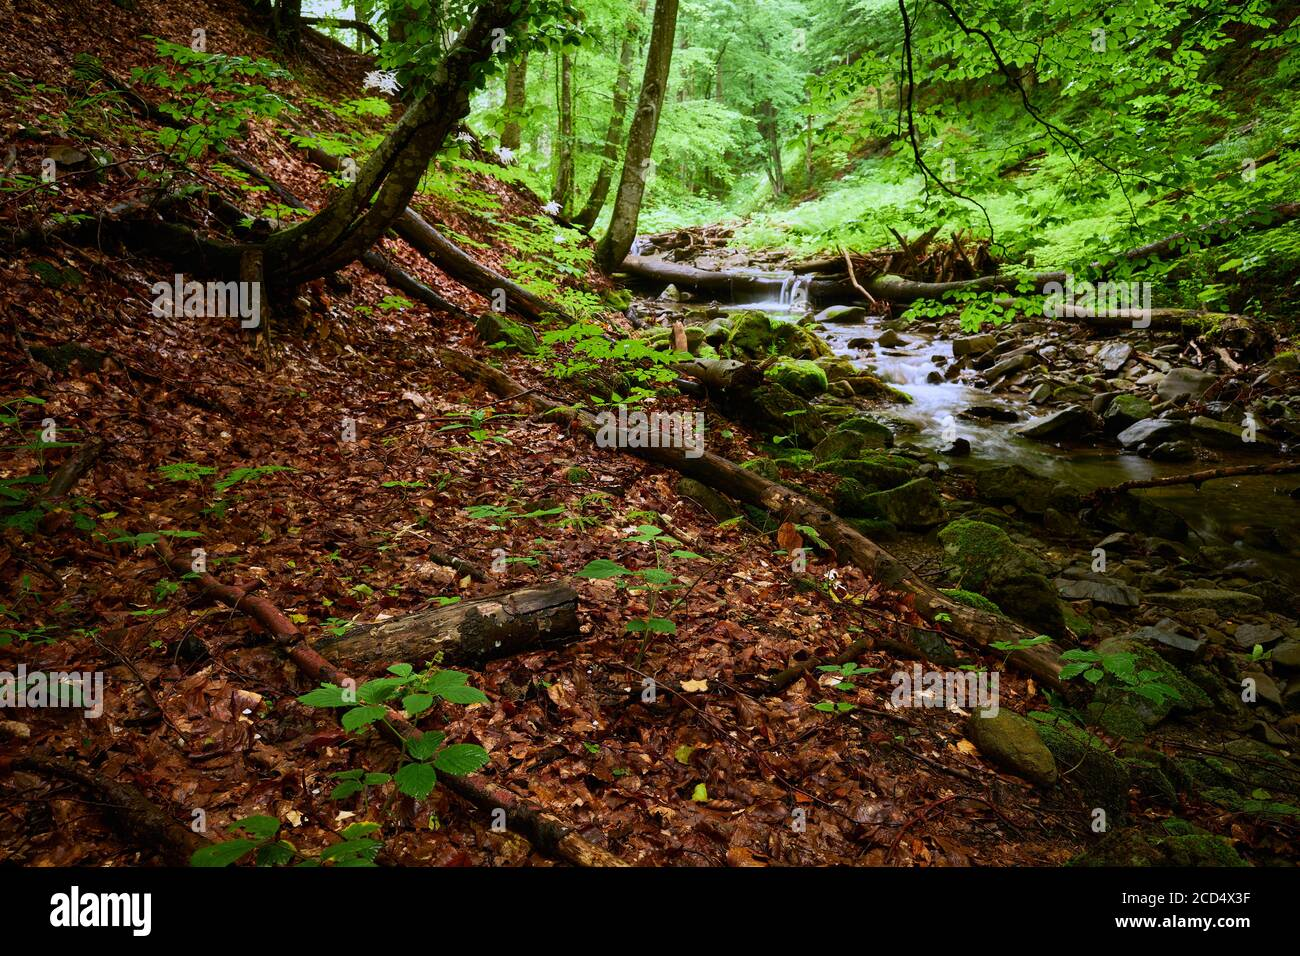 Wooded mountain stream bank. A mountain stream in the forest runs among the sloping banks strewn with fallen leaves. Stock Photo